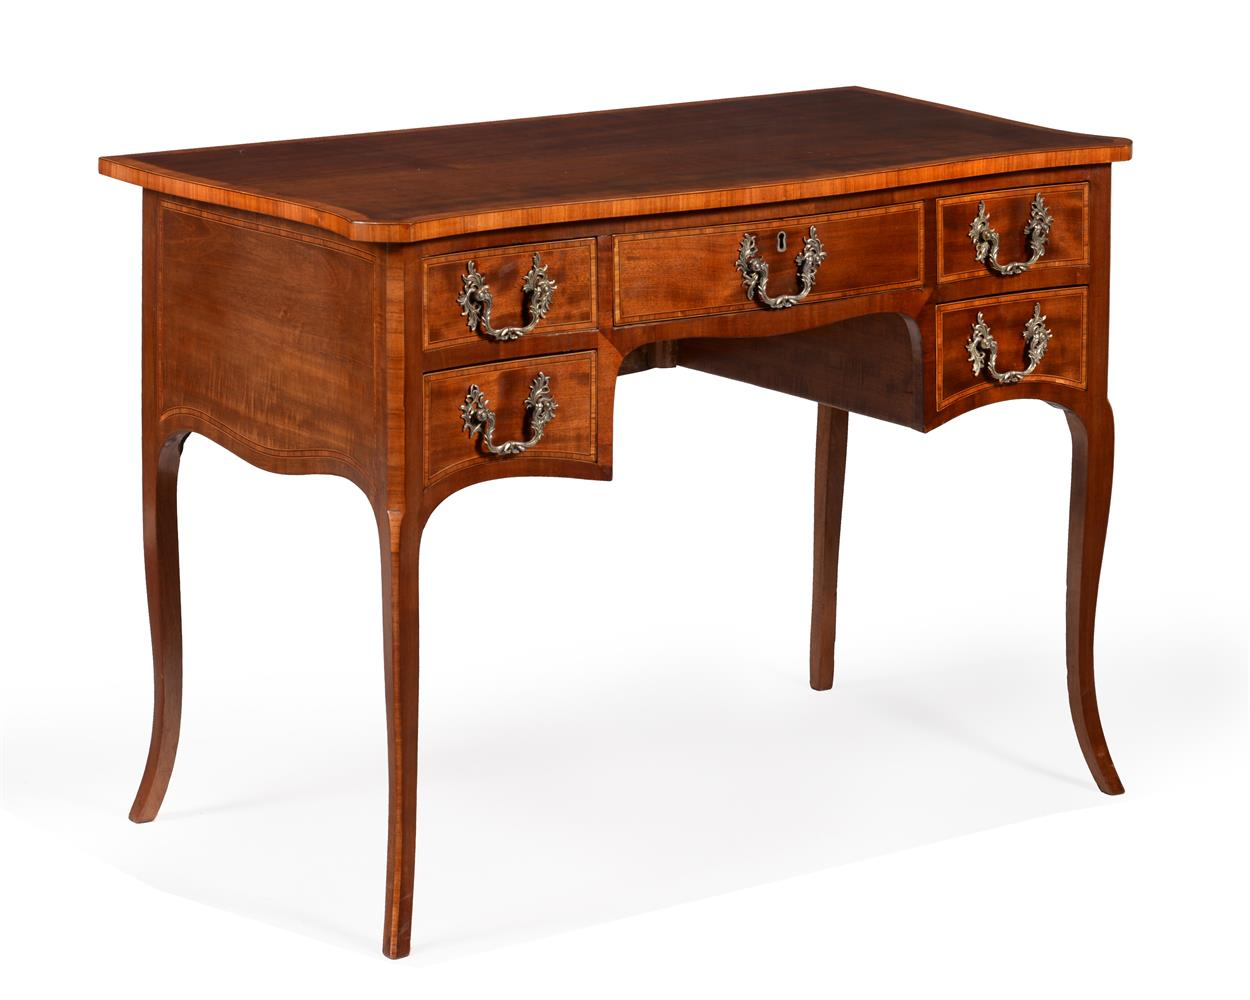 Y A GEORGE III MAHOGANY AND TULIPWOOD CROSSBANDED DRESSING TABLE, CIRCA 1785 - Image 3 of 4